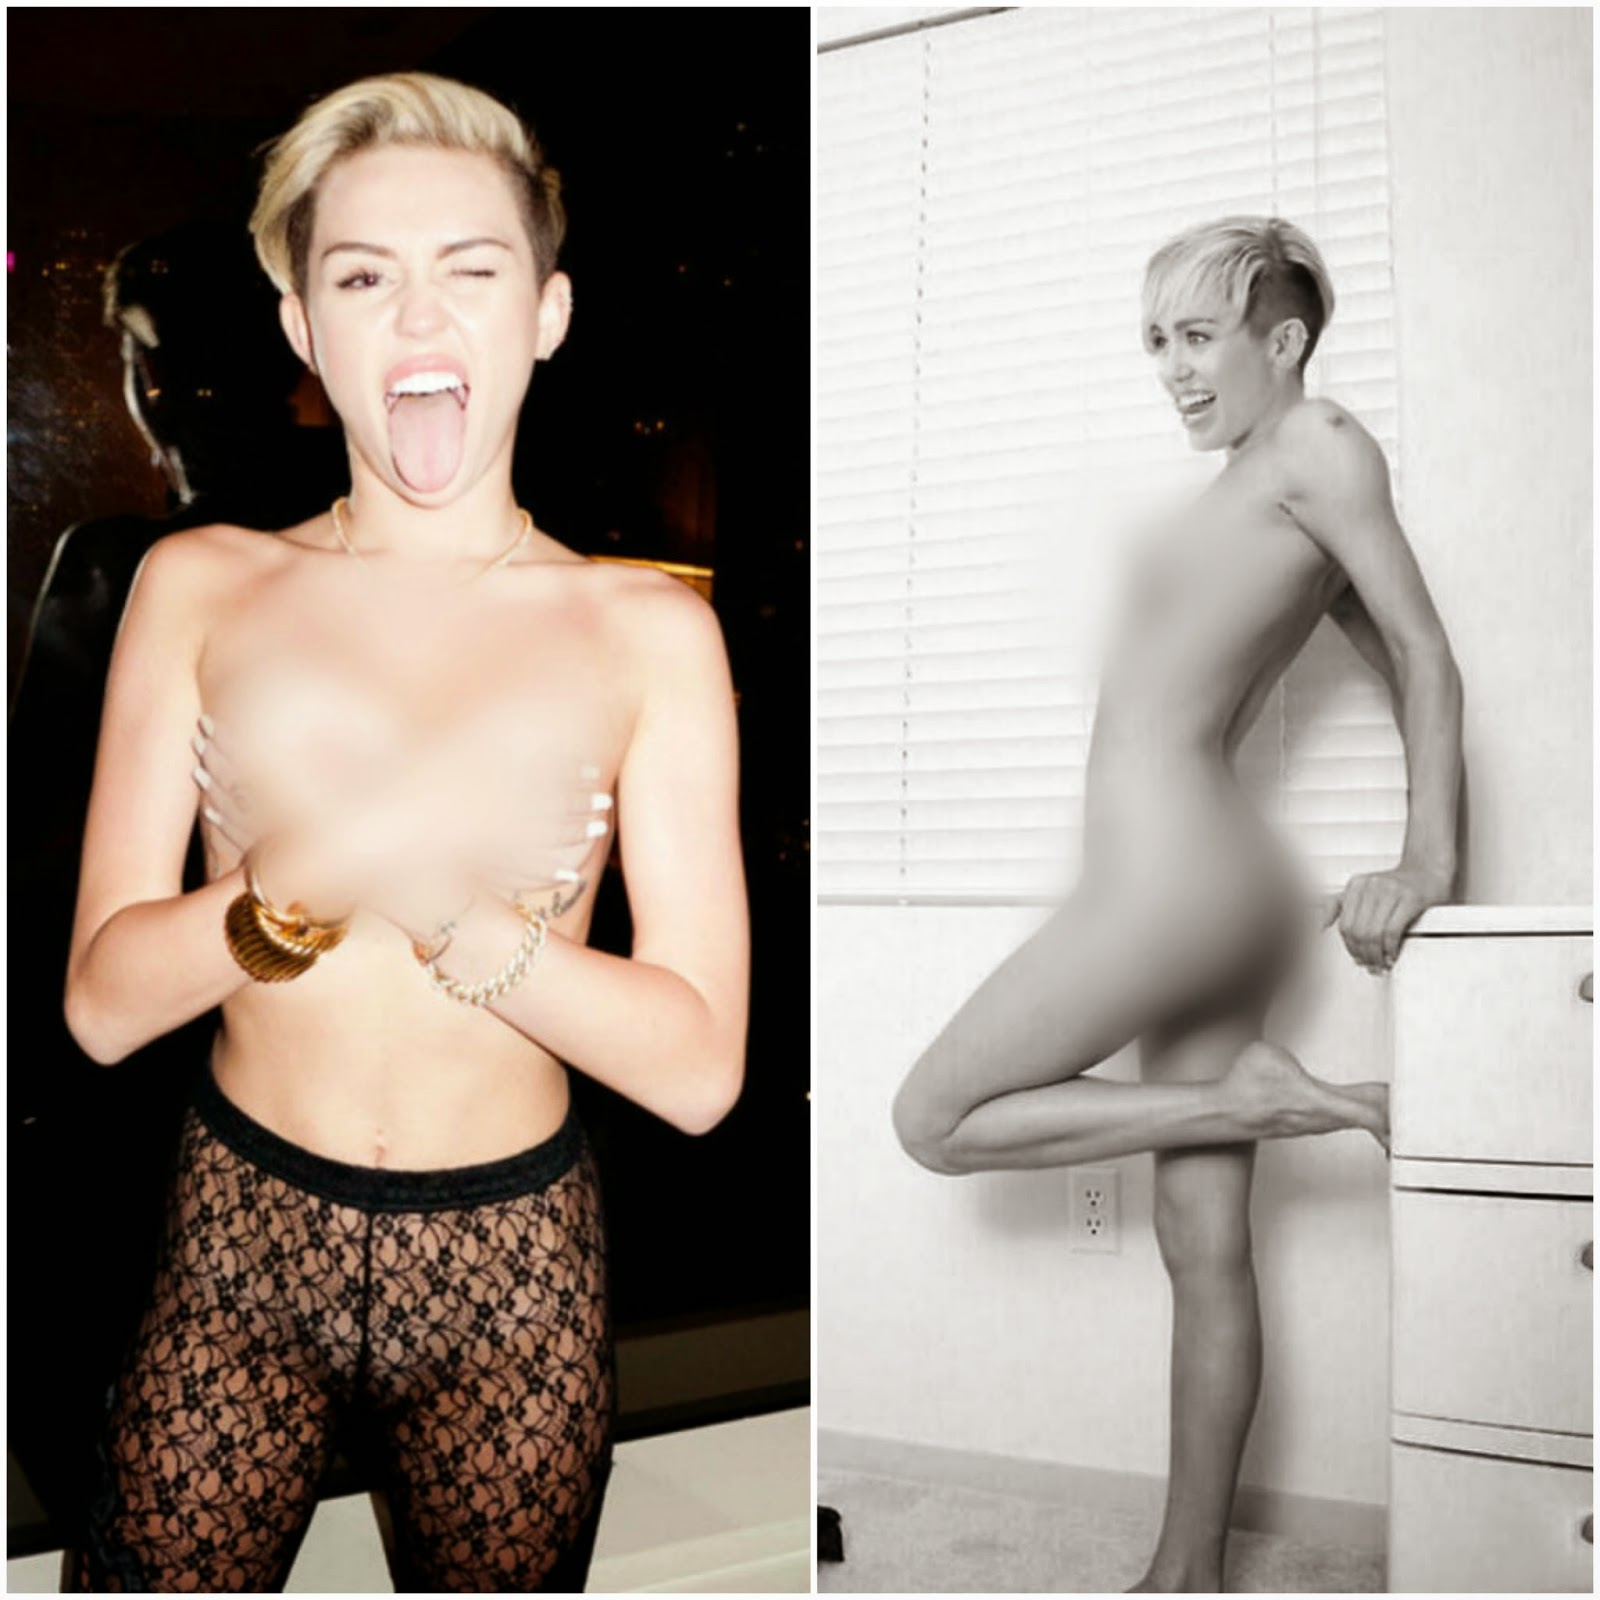 Miley Cyrus Leaked Nude Photos